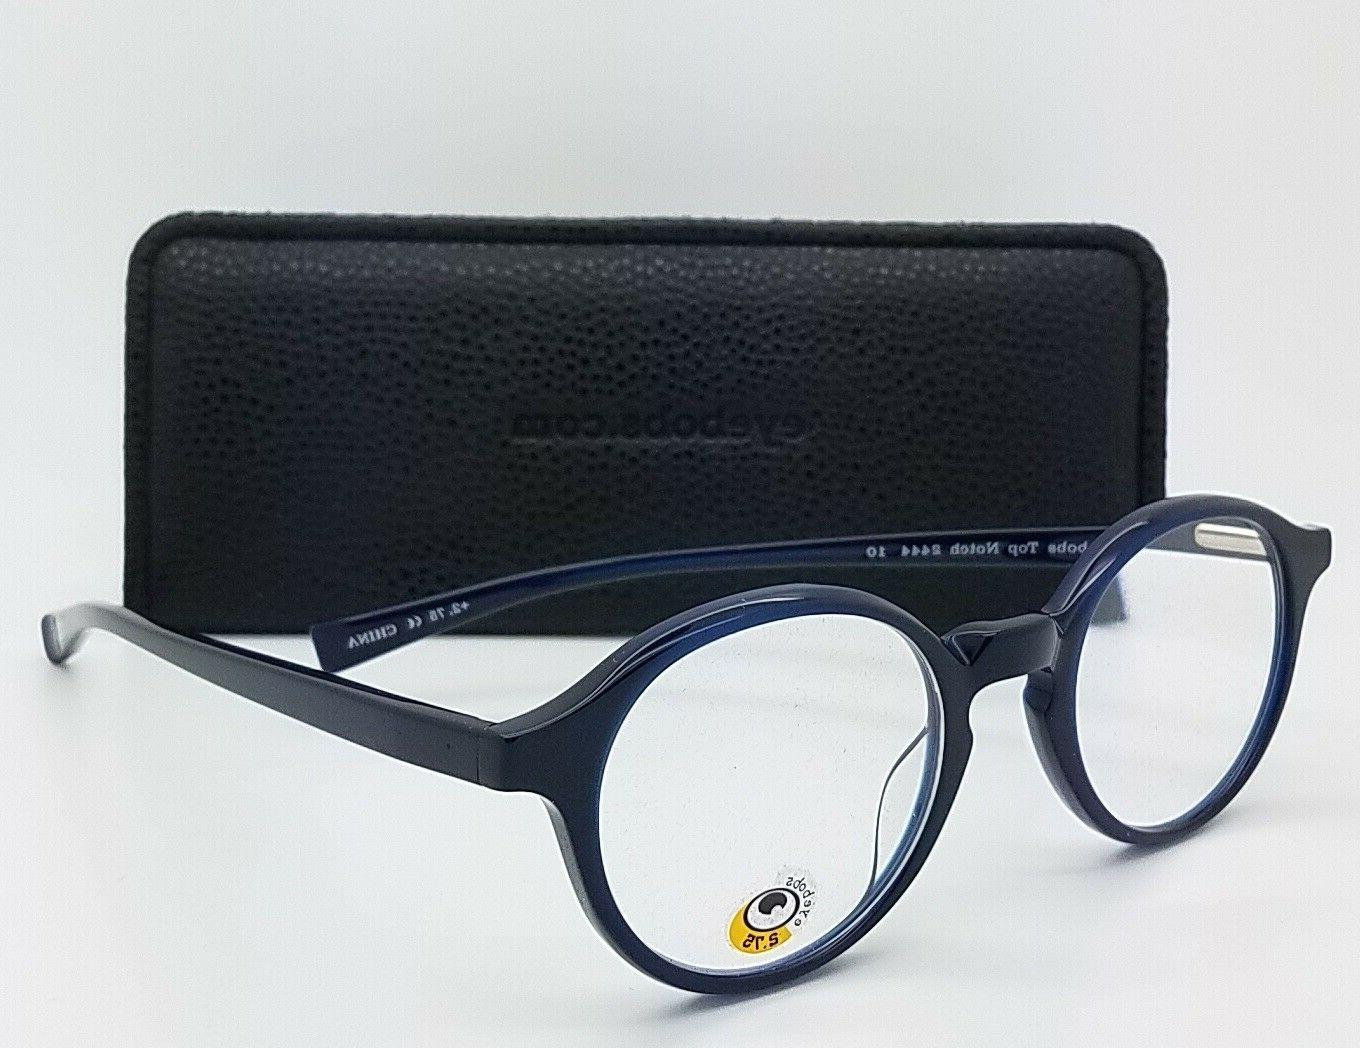 new readers top notch 2444 10 2